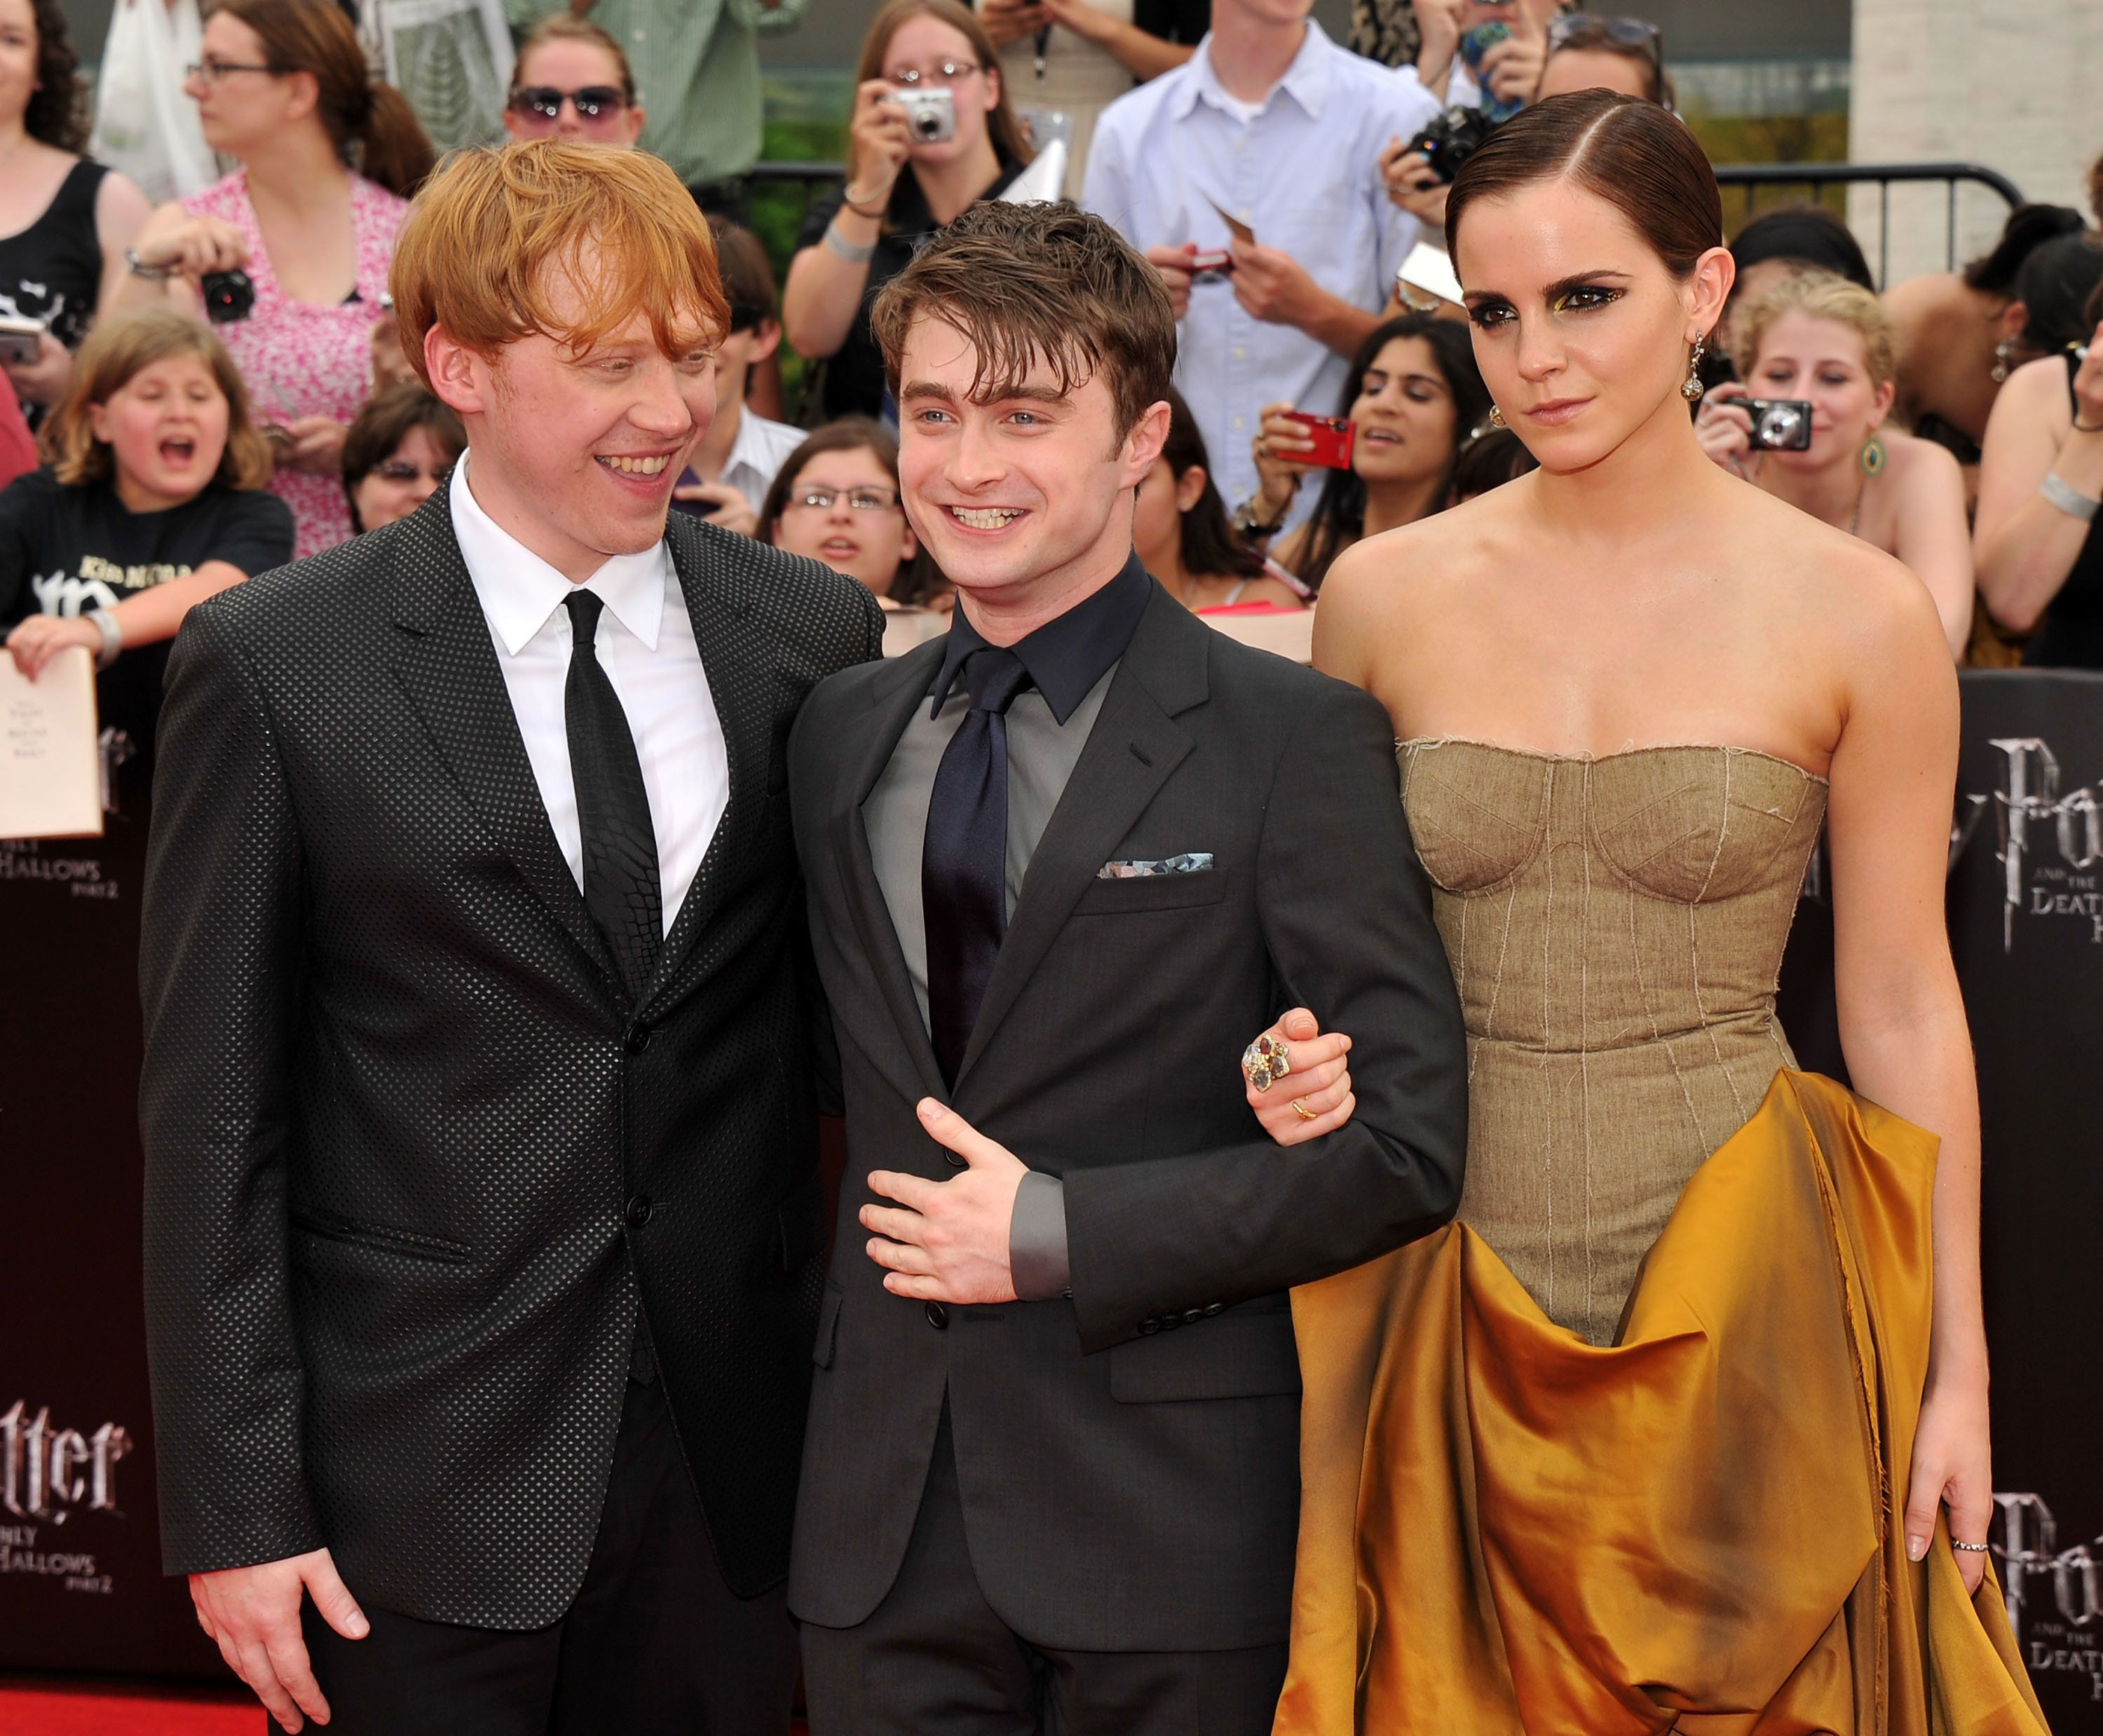 NEW YORK, NY - JULY 11:  (L-R) Rupert Grint, Daniel Radcliffe and Emma Watson attend the New York premiere of 'Harry Potter And The Deathly Hallows: Part 2' at Avery Fisher Hall, Lincoln Center on July 11, 2011 in New York City.  (Photo by Stephen Lovekin/Getty Images)